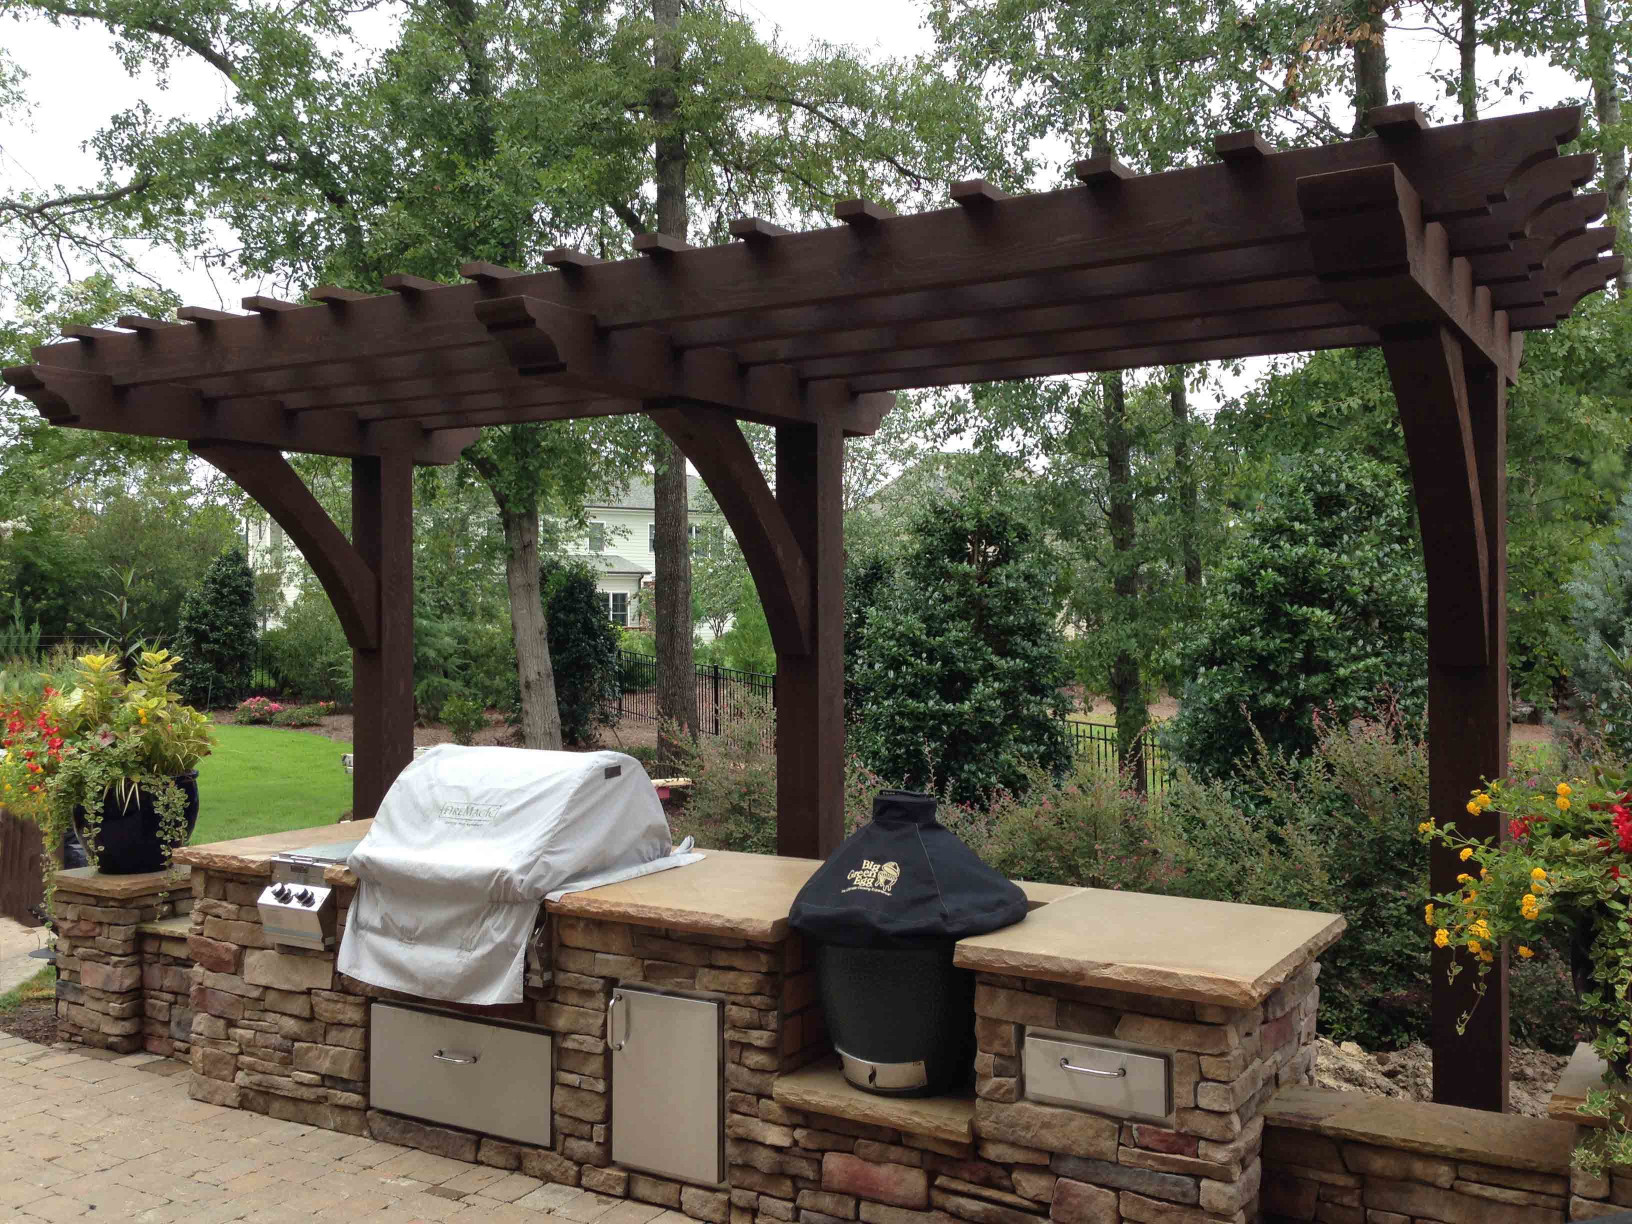 This wood arbor over this grill is a great way to add to this outdoor living space.